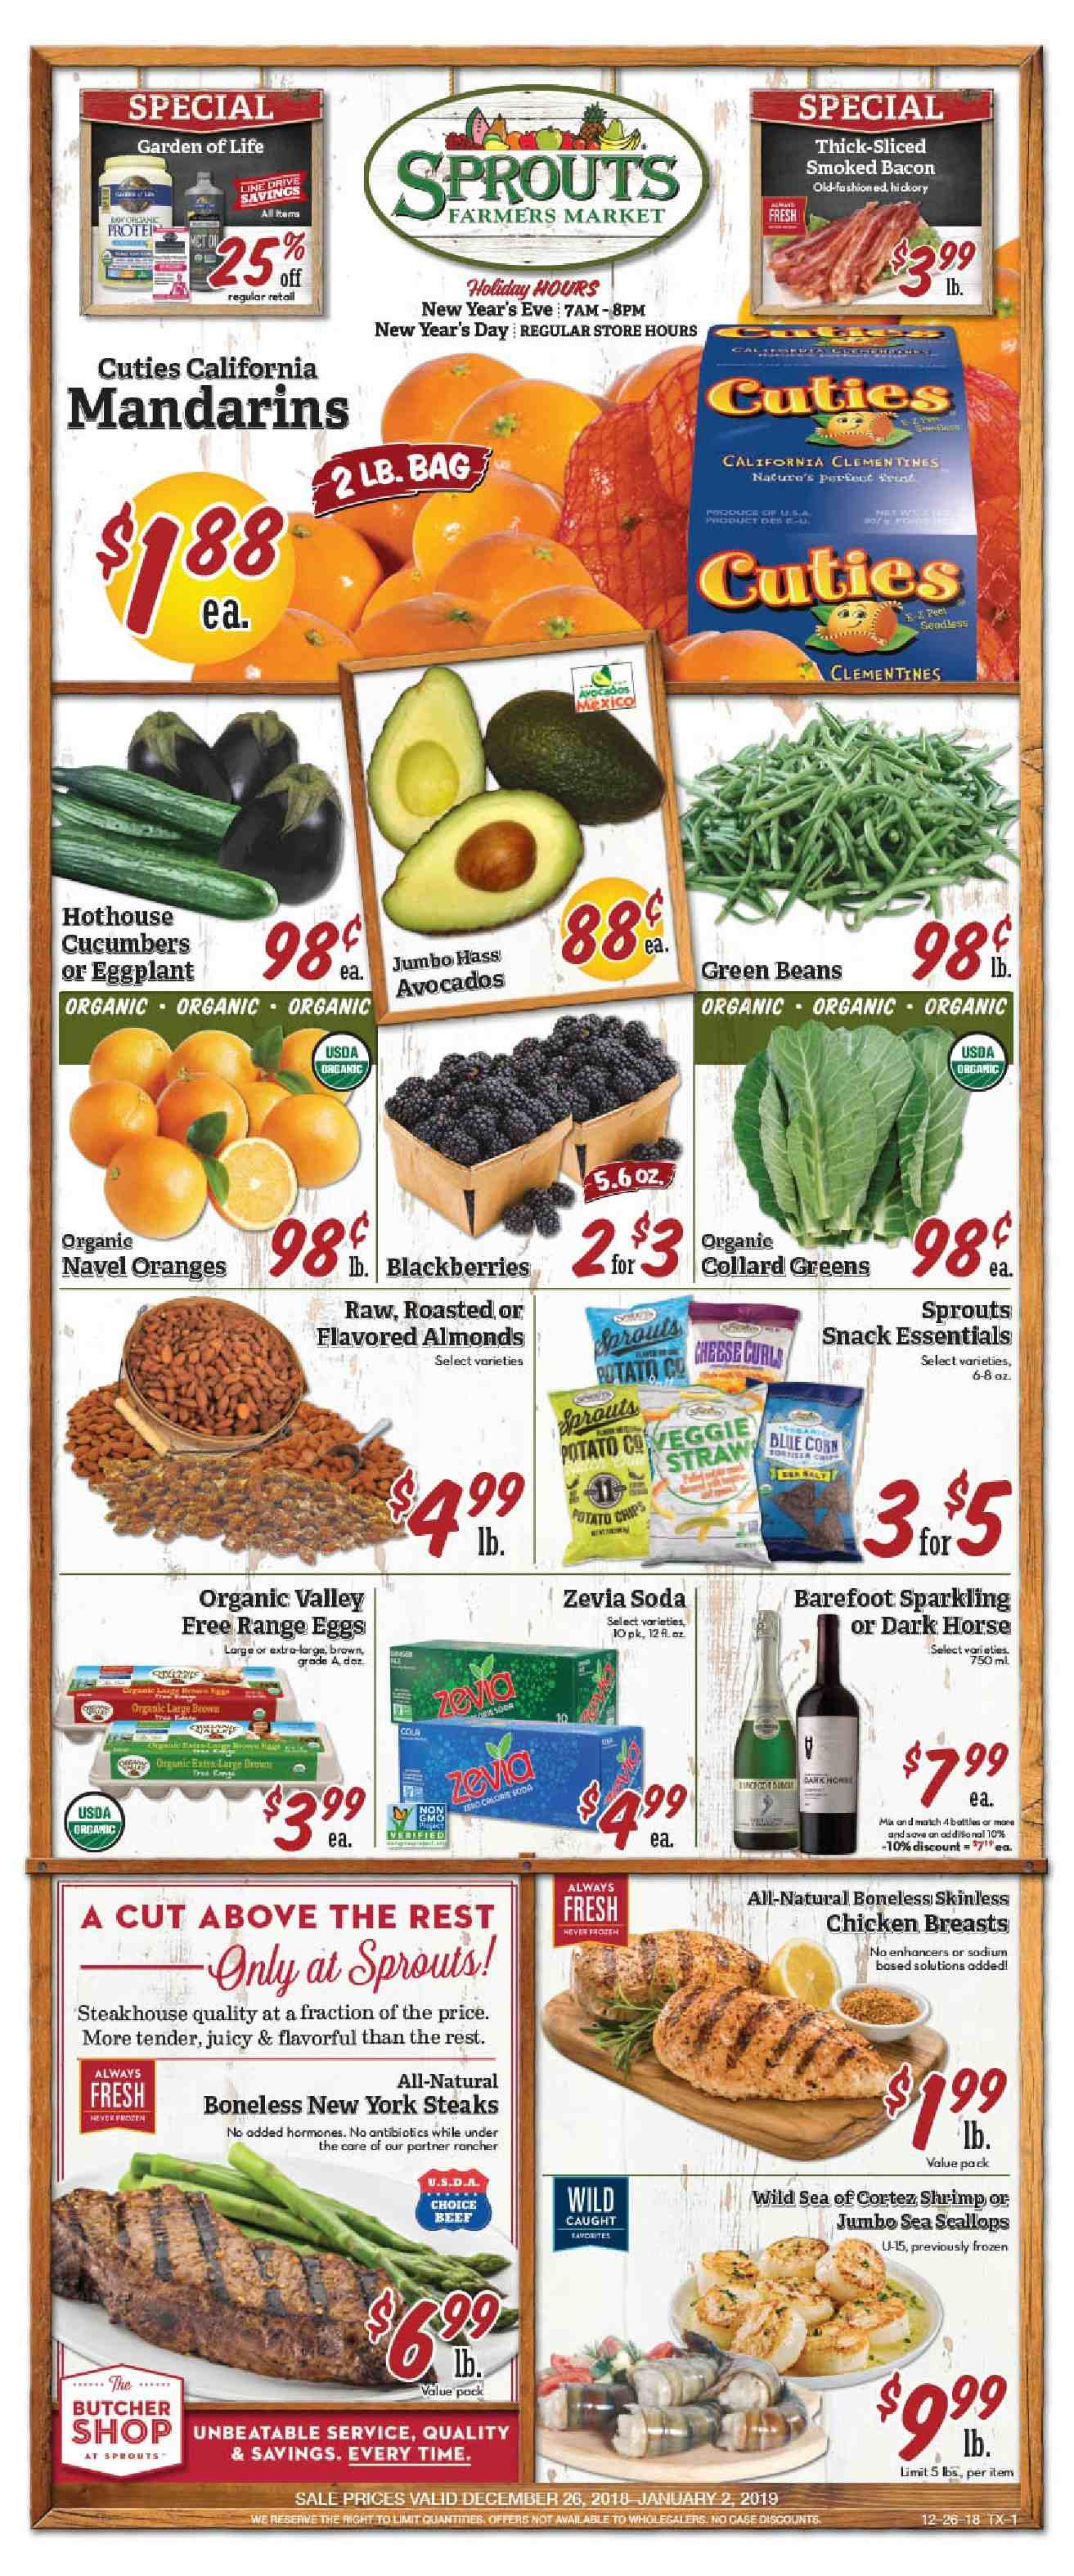 Sprouts Flyer  - 12.26.2018 - 01.02.2019. Page 1.